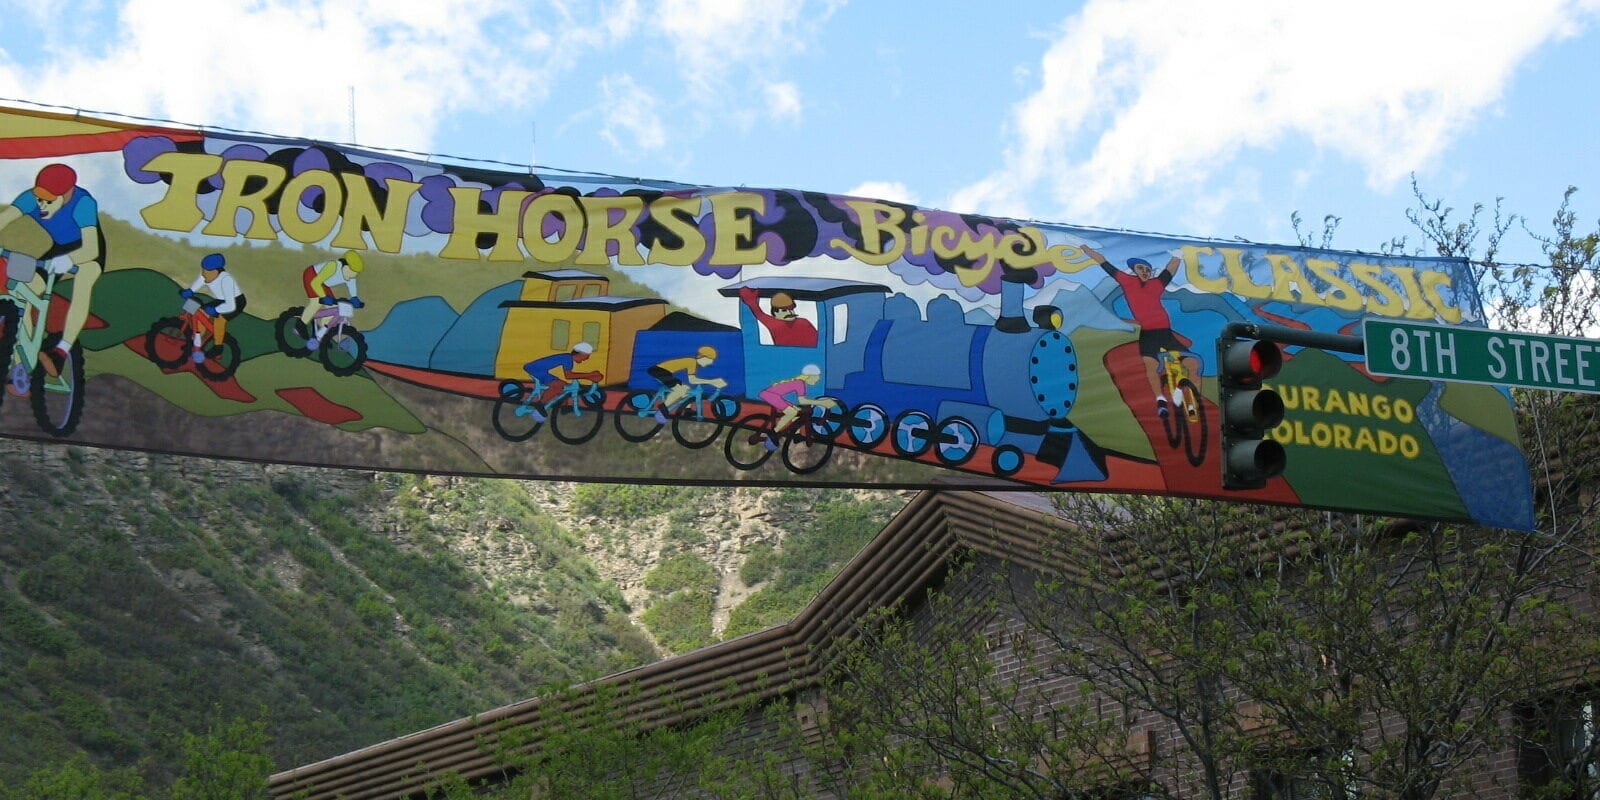 Iron Horse Bicycle Classic Downtown Durango Sign